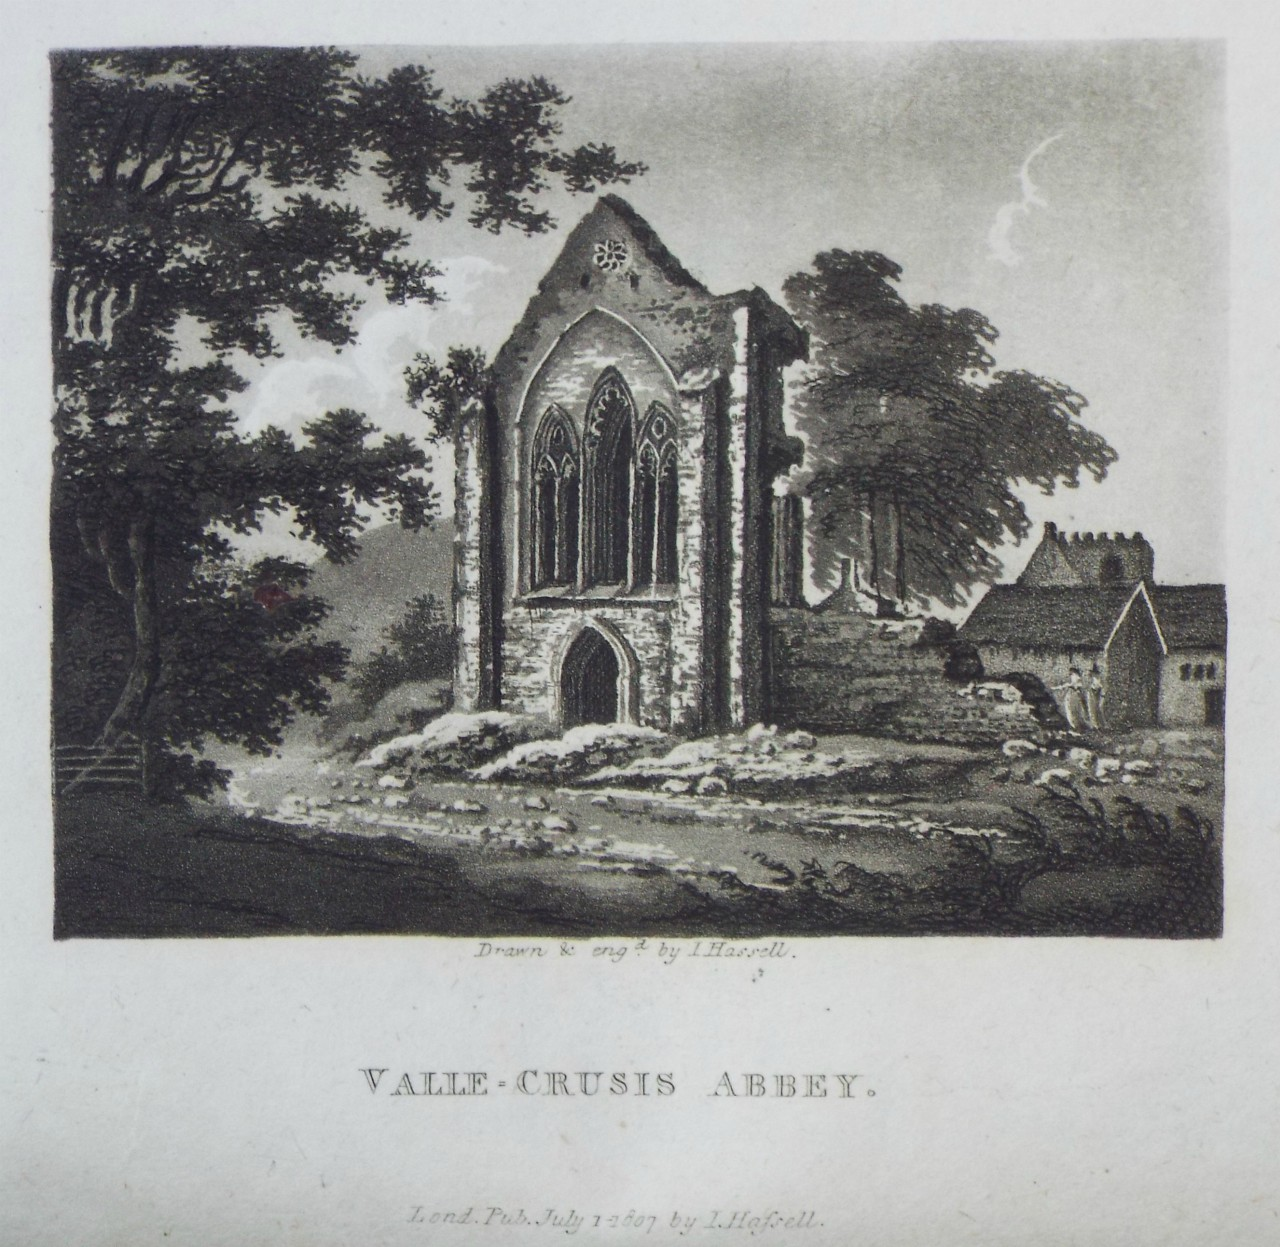 Aquatint - Valle-Crucis Abbey. - Hassell